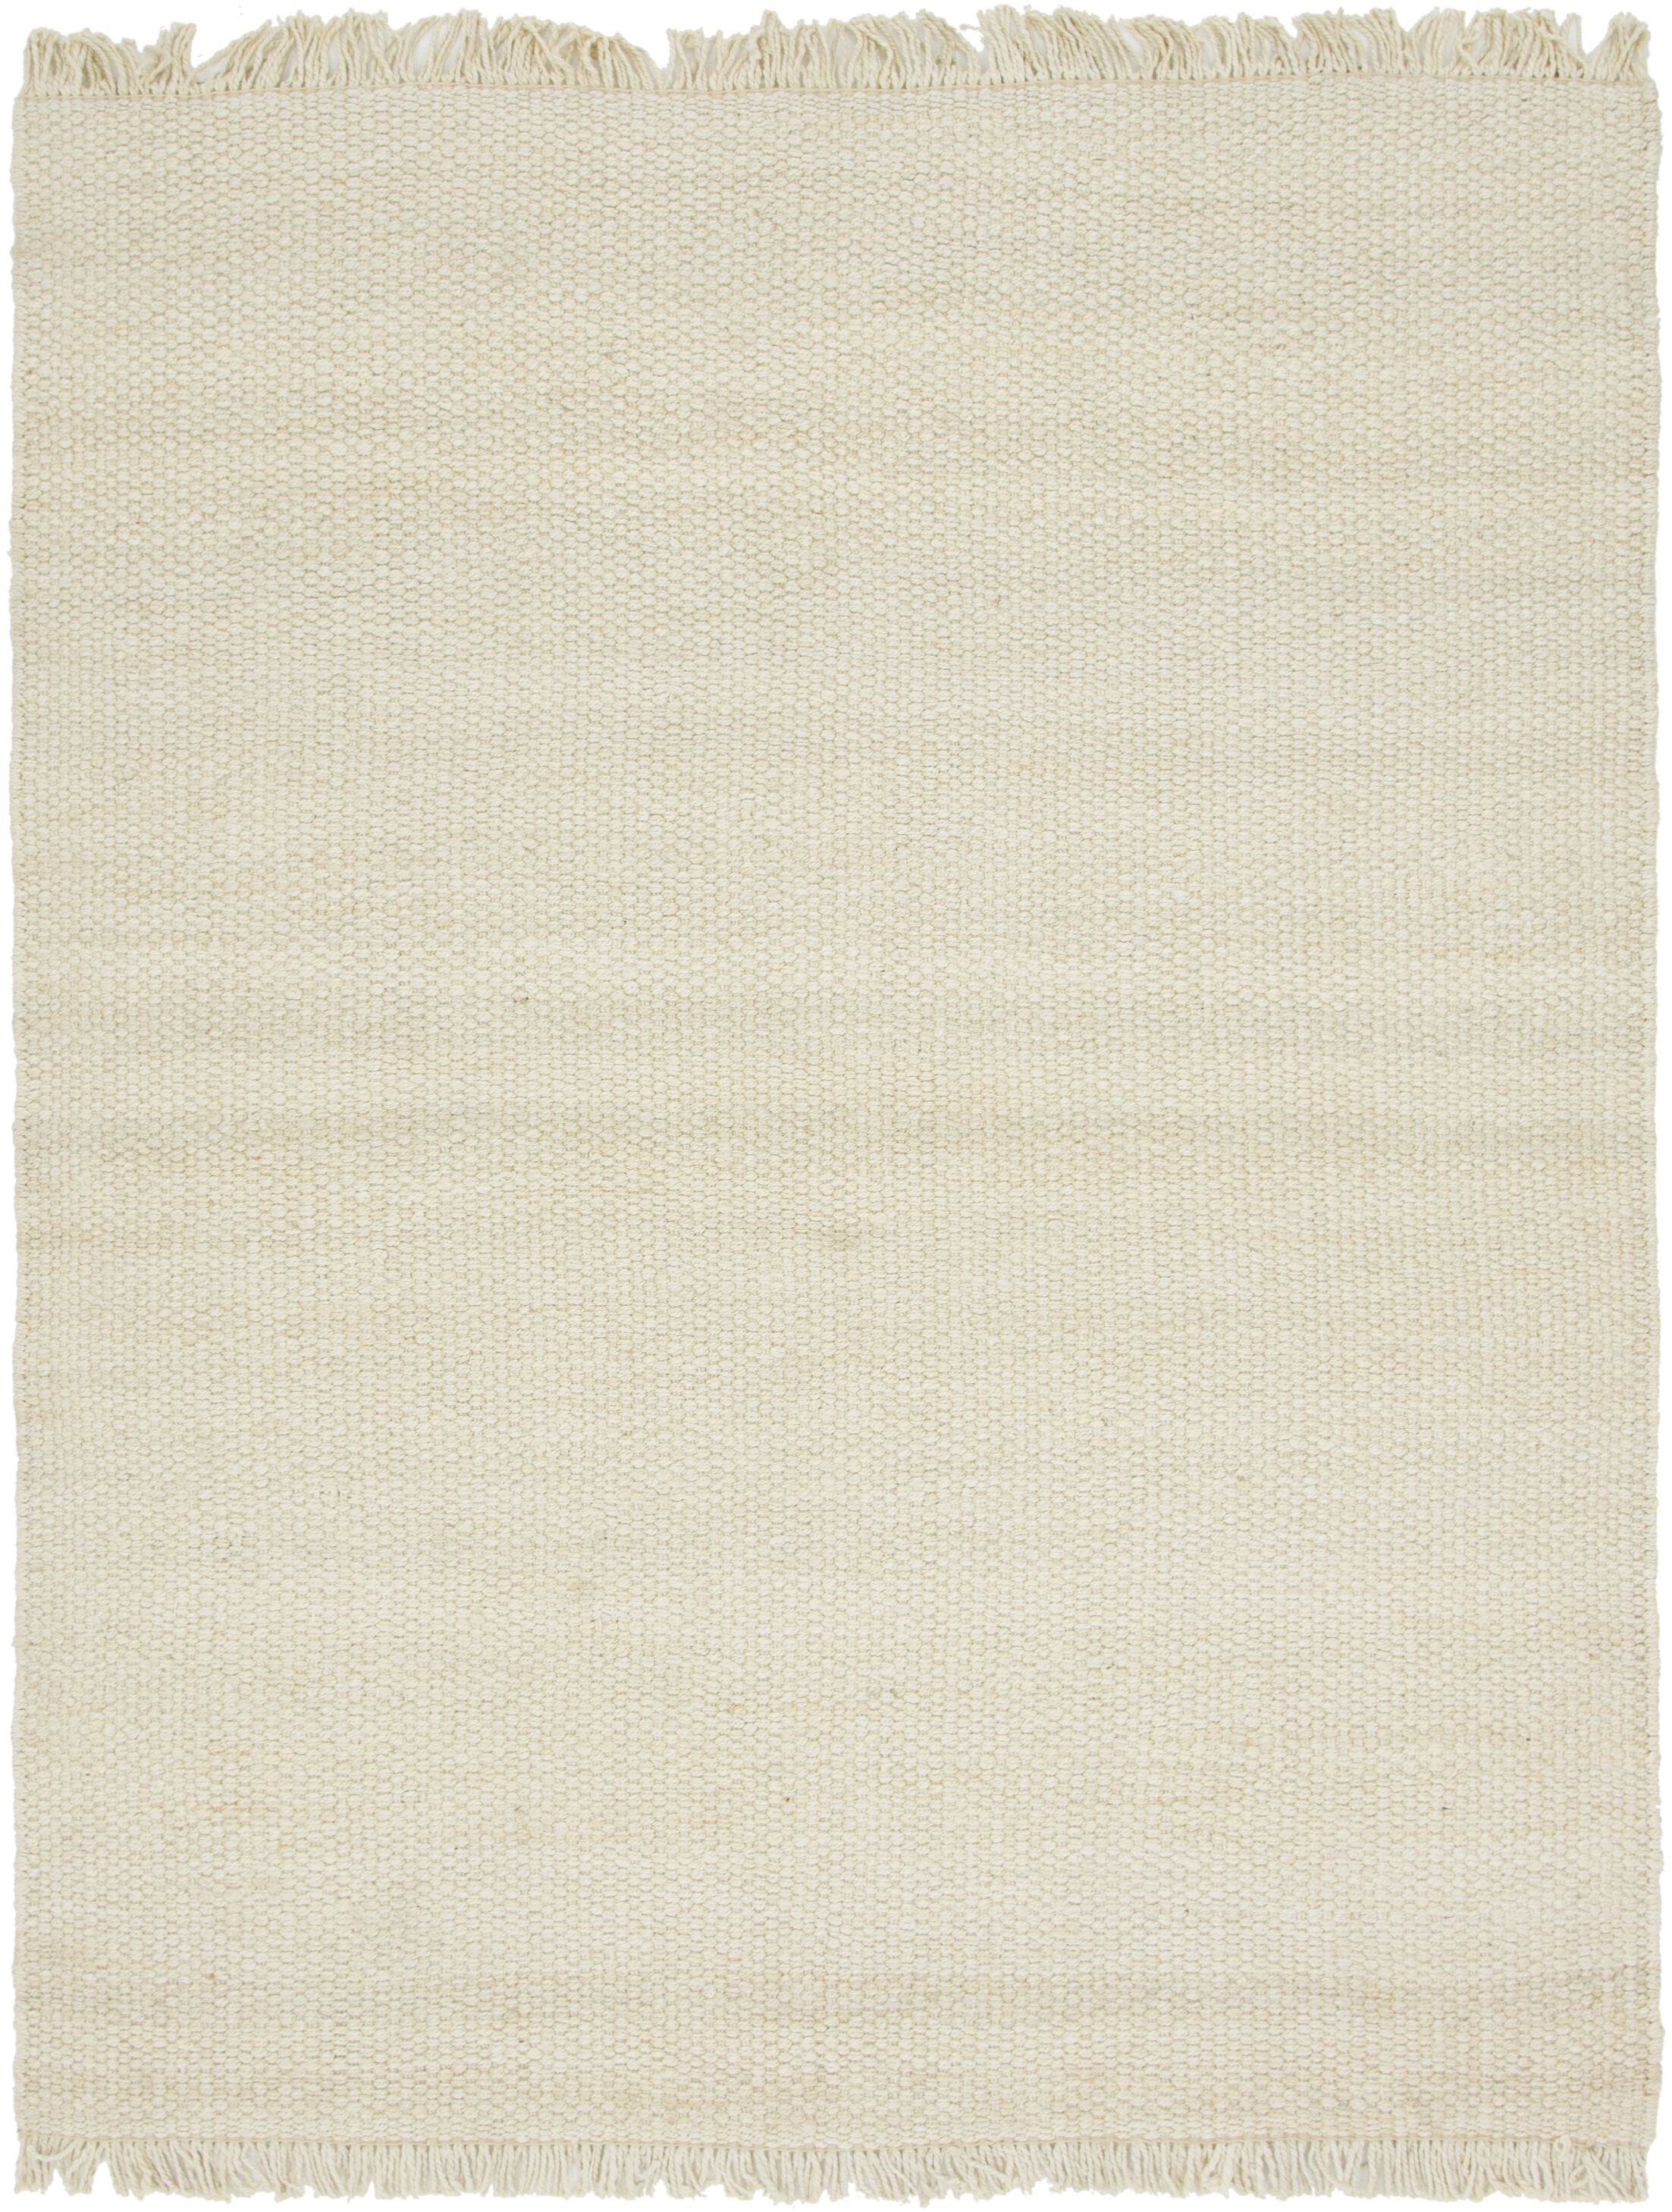 Gelman Hand-Woven Ivory Area Rug Rug Size: Rectangle 8' x 10'